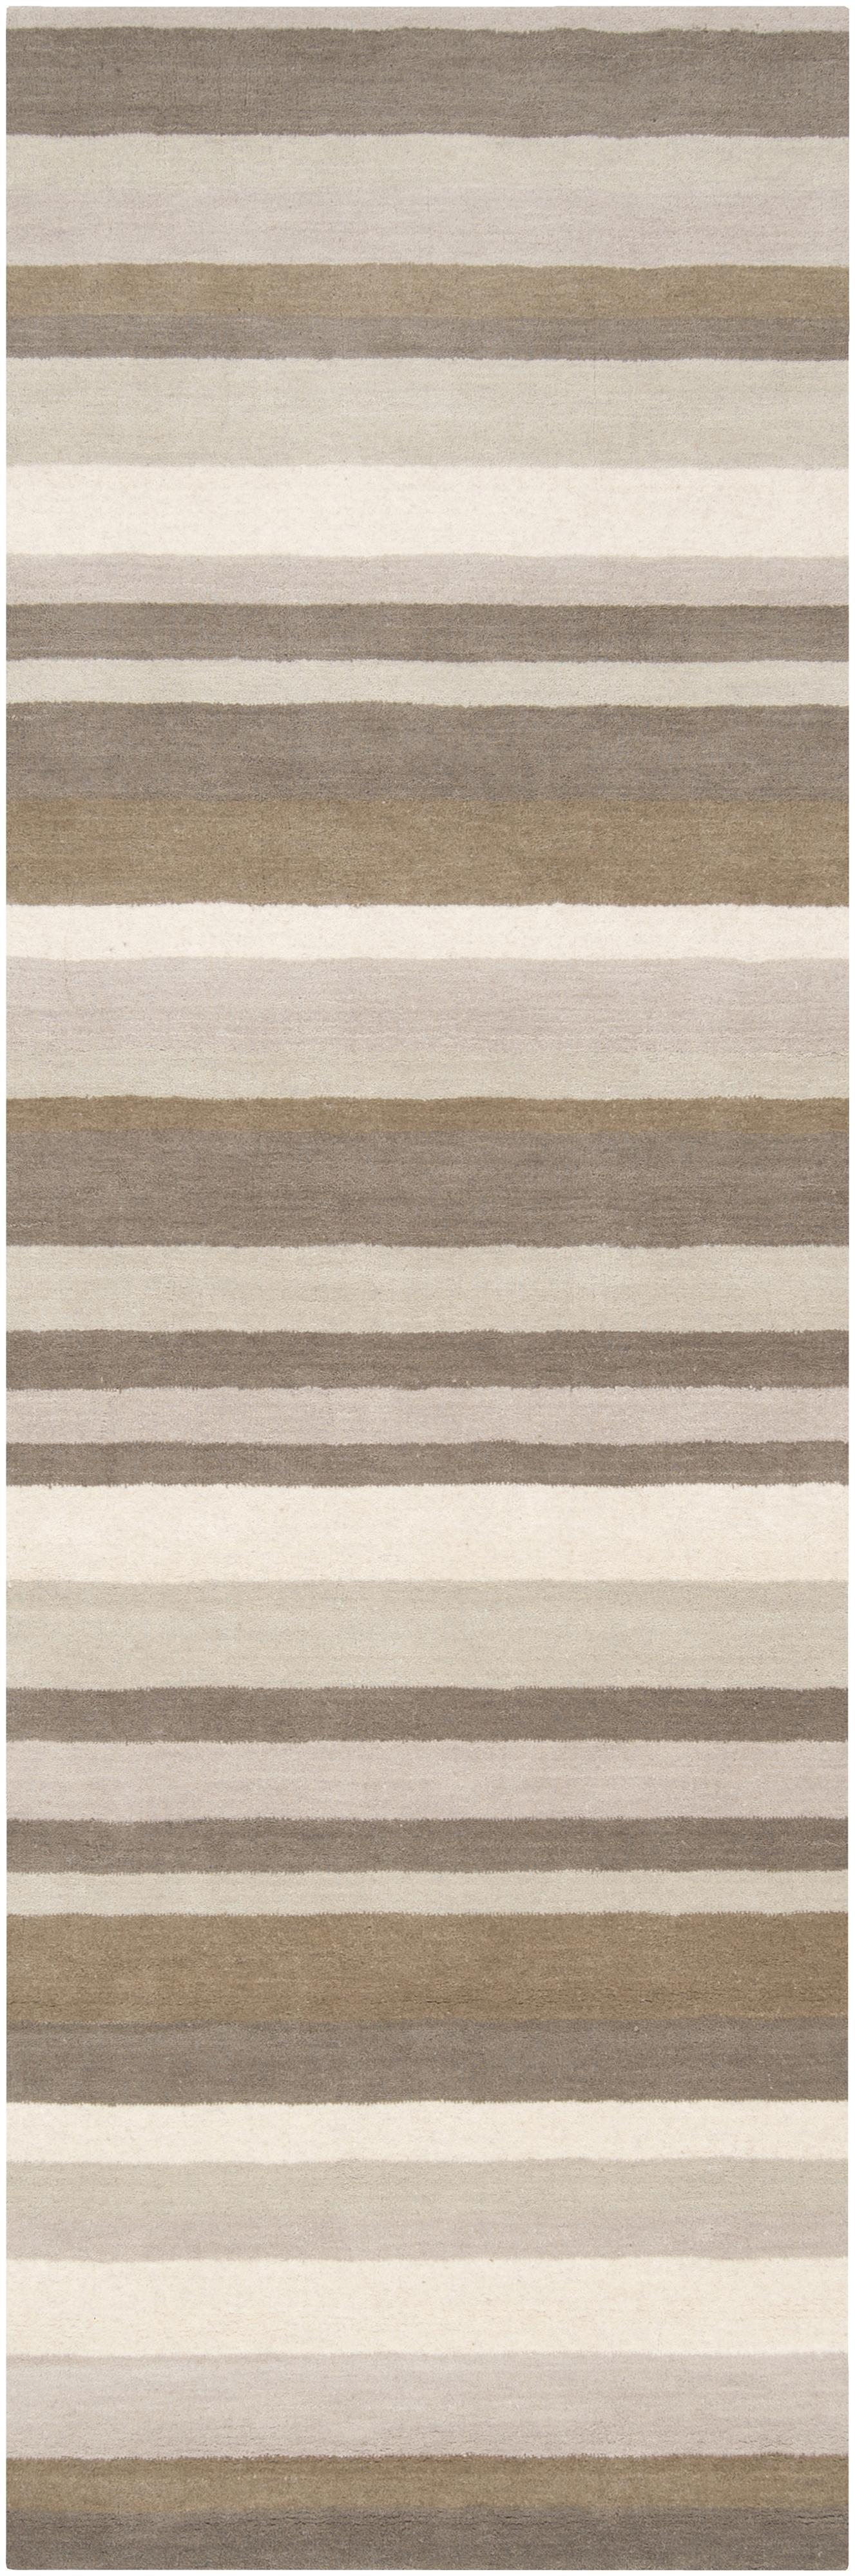 "Surya Rugs Madison Square 2'6"" x 8' - Item Number: MDS1009-268"